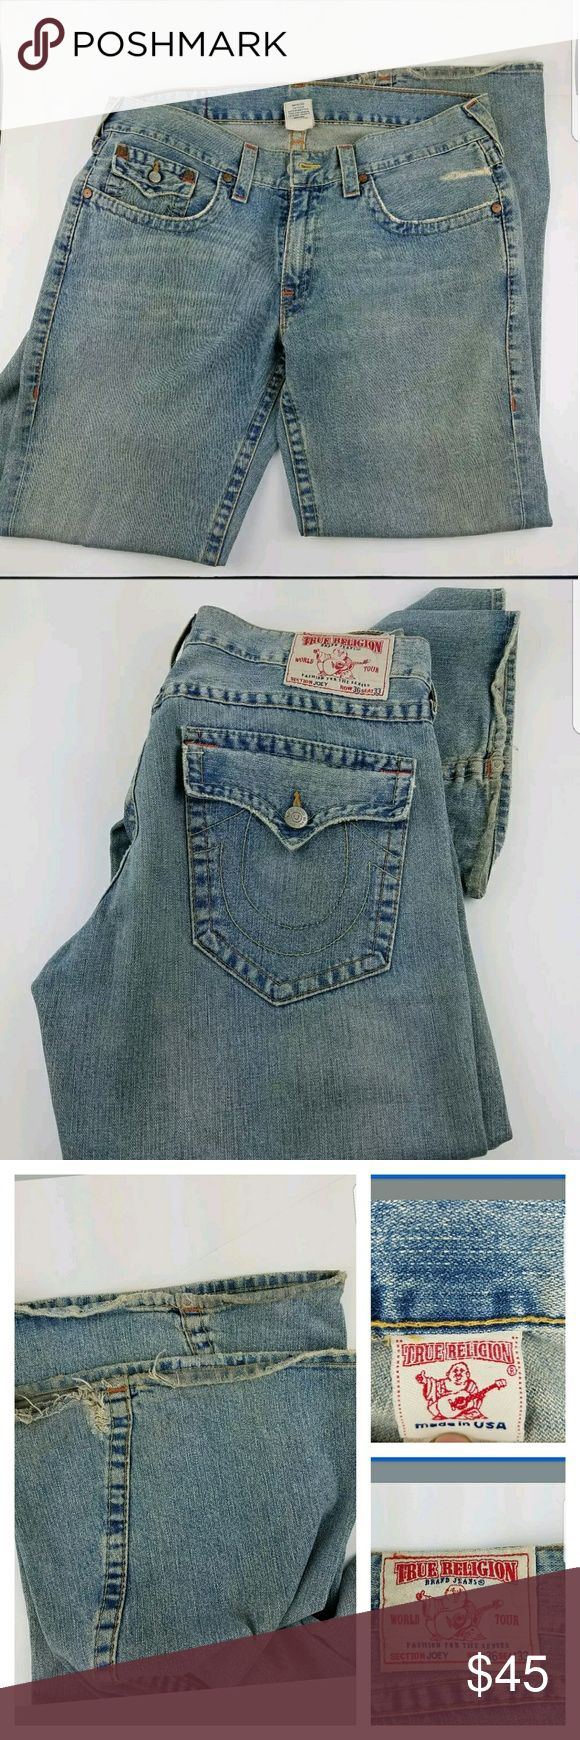 TRUE RELIGION Men's JOEY BIG T 36 x 33 Bootcut Up for sale is TRUE RELIGION Men's JOEY BIG T 36 x 33 Medium Vintage Bootcut Super TR Jeans? Please check last picture for measurements. There are some wear on the hems please look at all the pictures. True Religion Jeans Bootcut